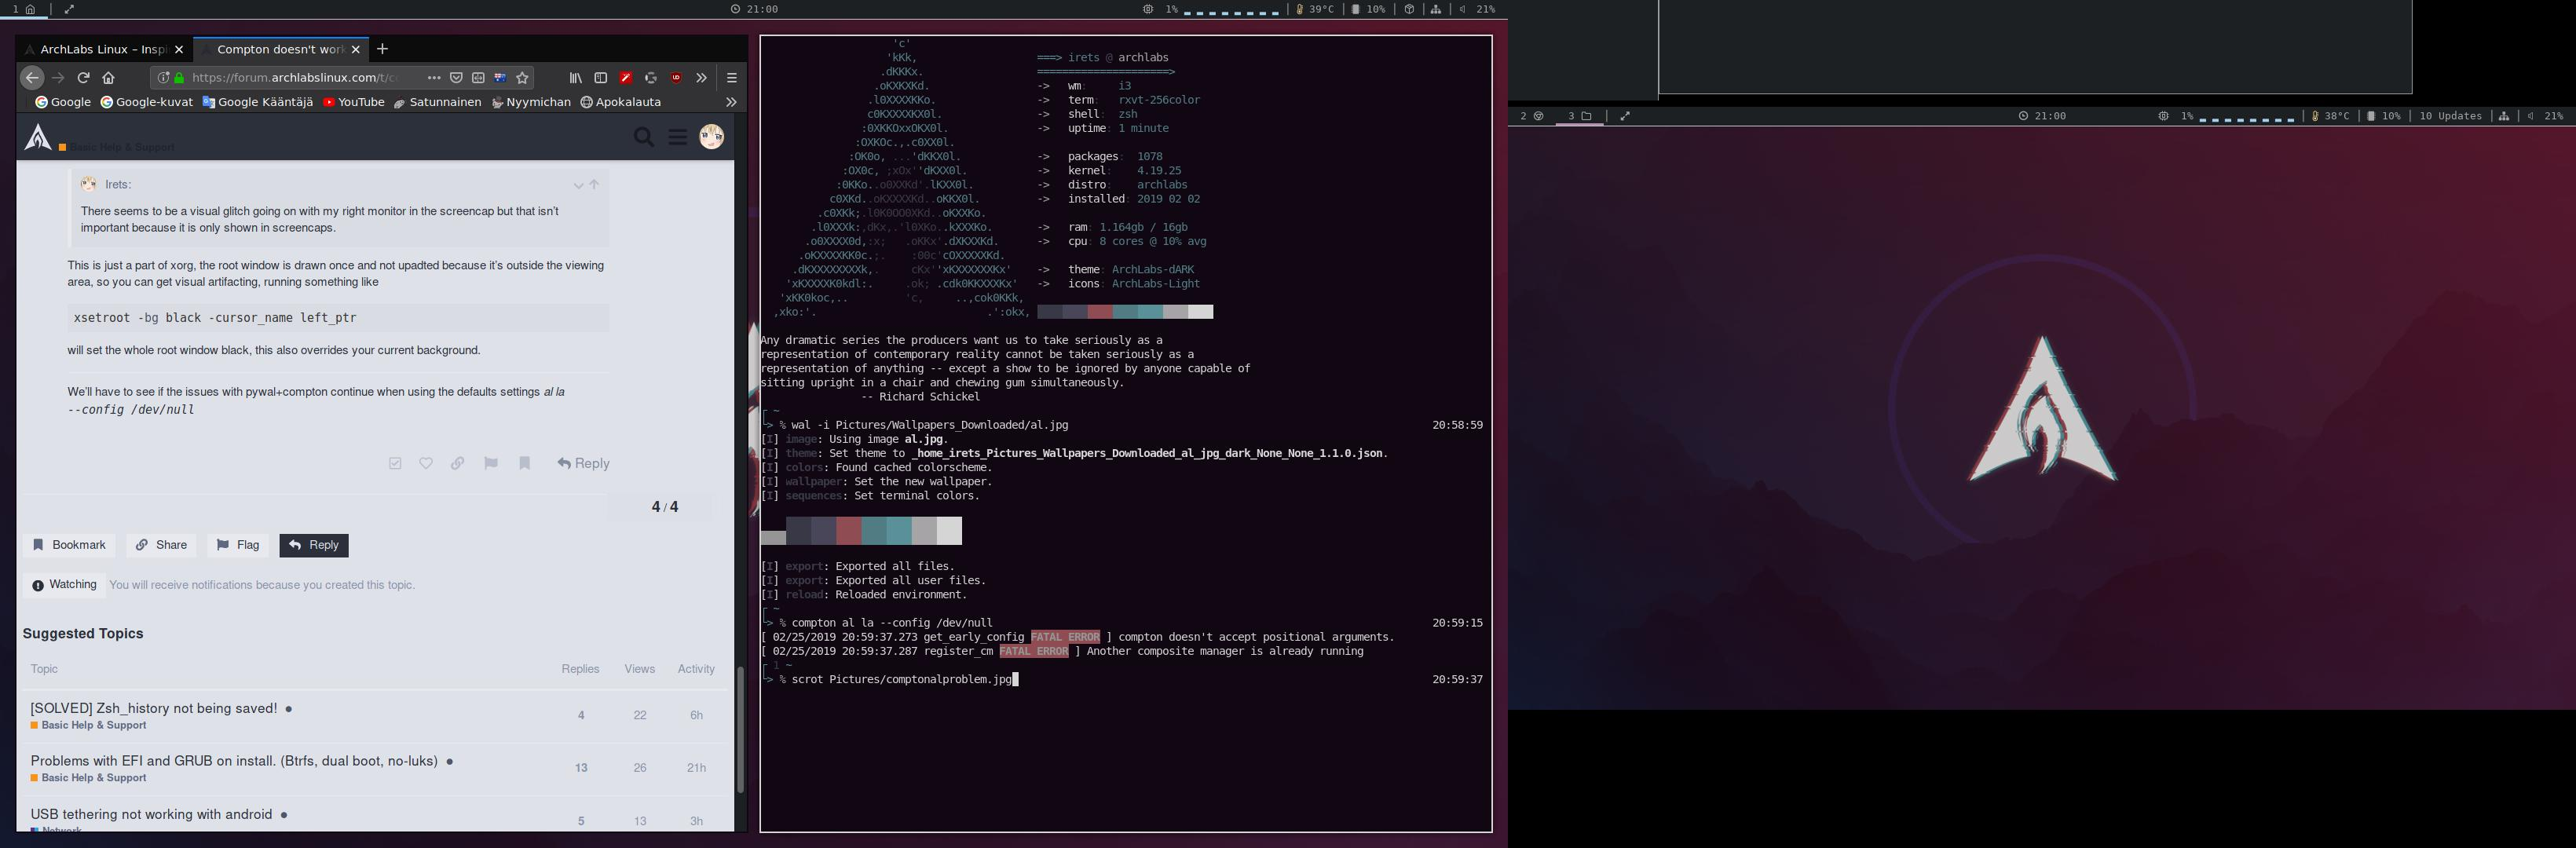 Compton doesn't work with pywal - Basic Help & Support - ArchLabs Linux